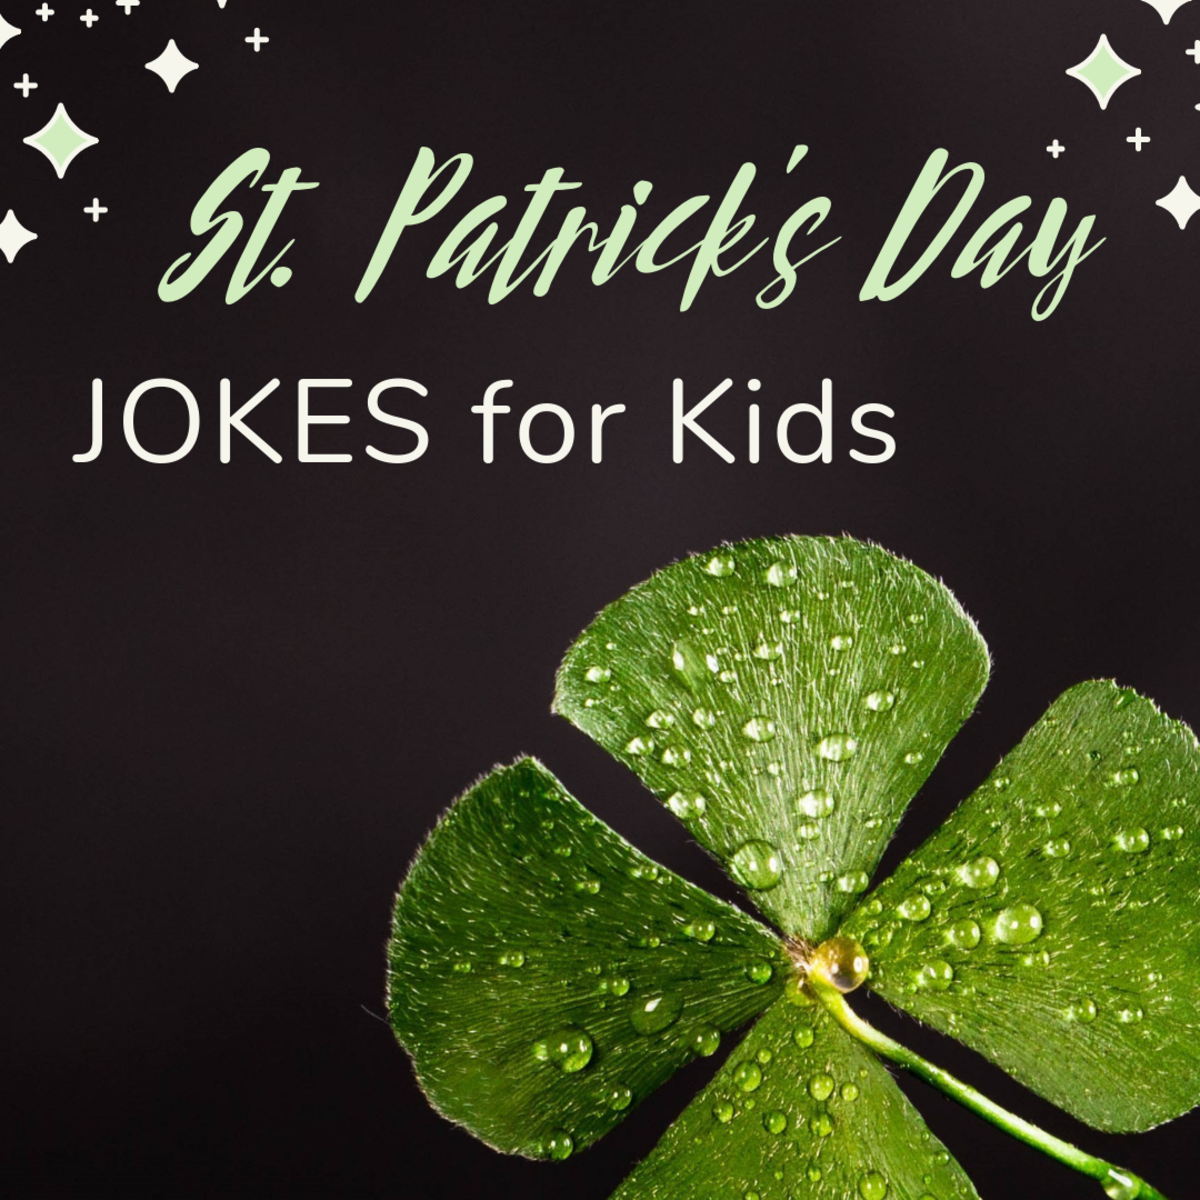 St. Patrick's Day Jokes